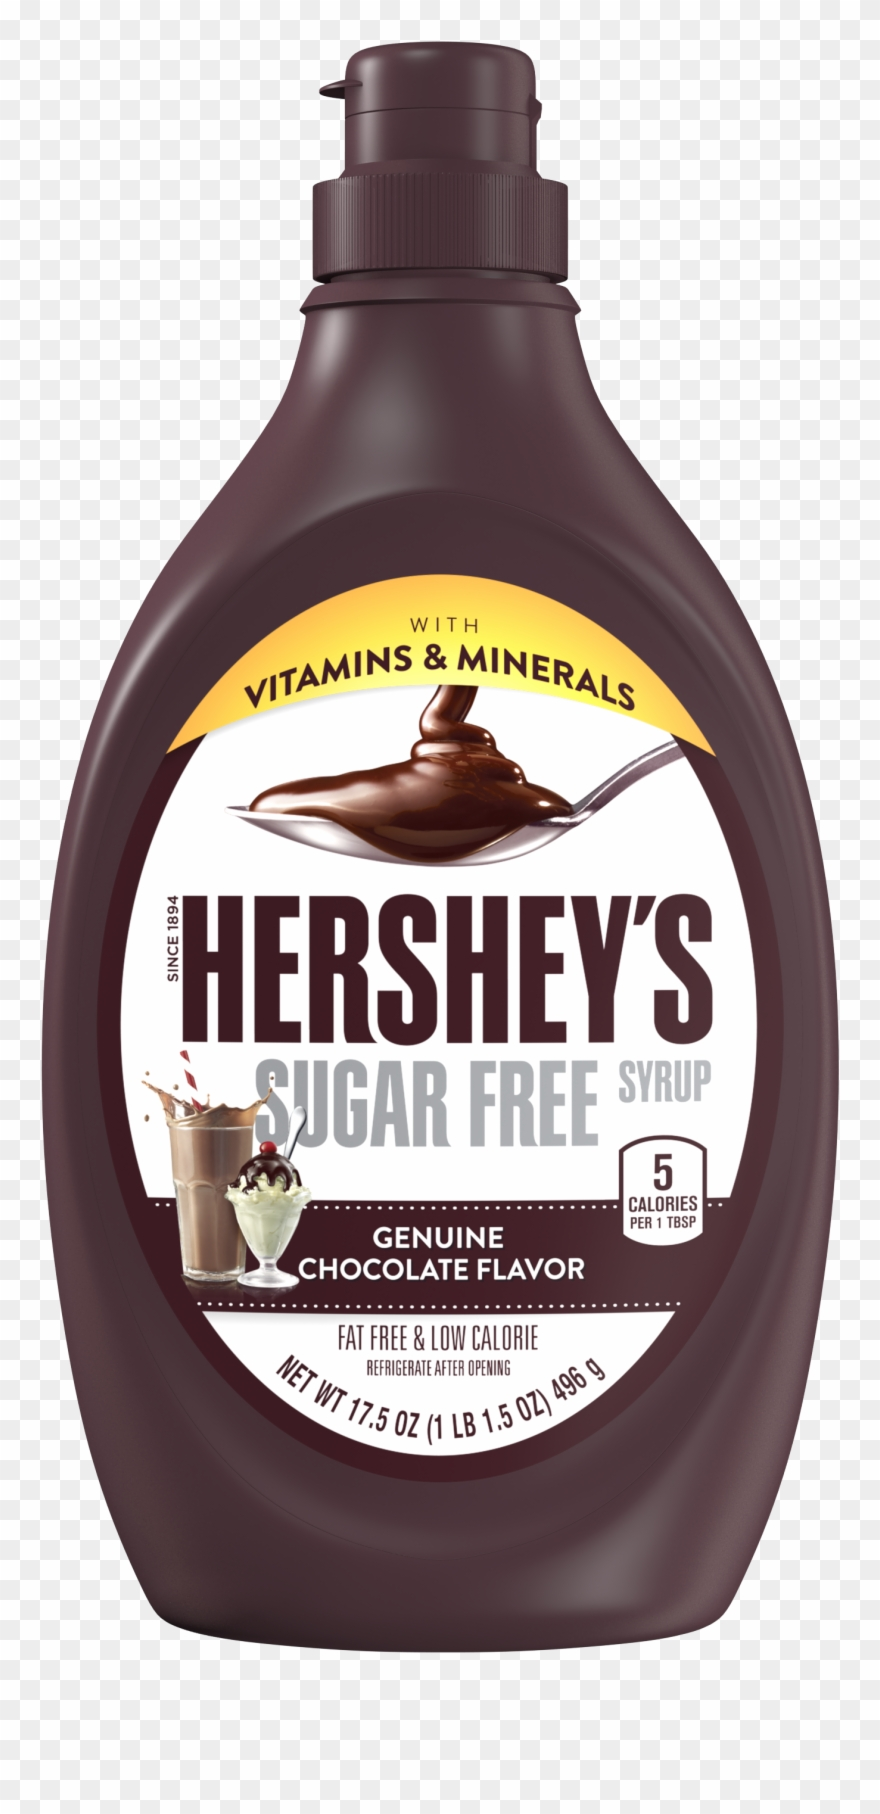 picture royalty free download Hershey clipart syrup. S png download pinclipart